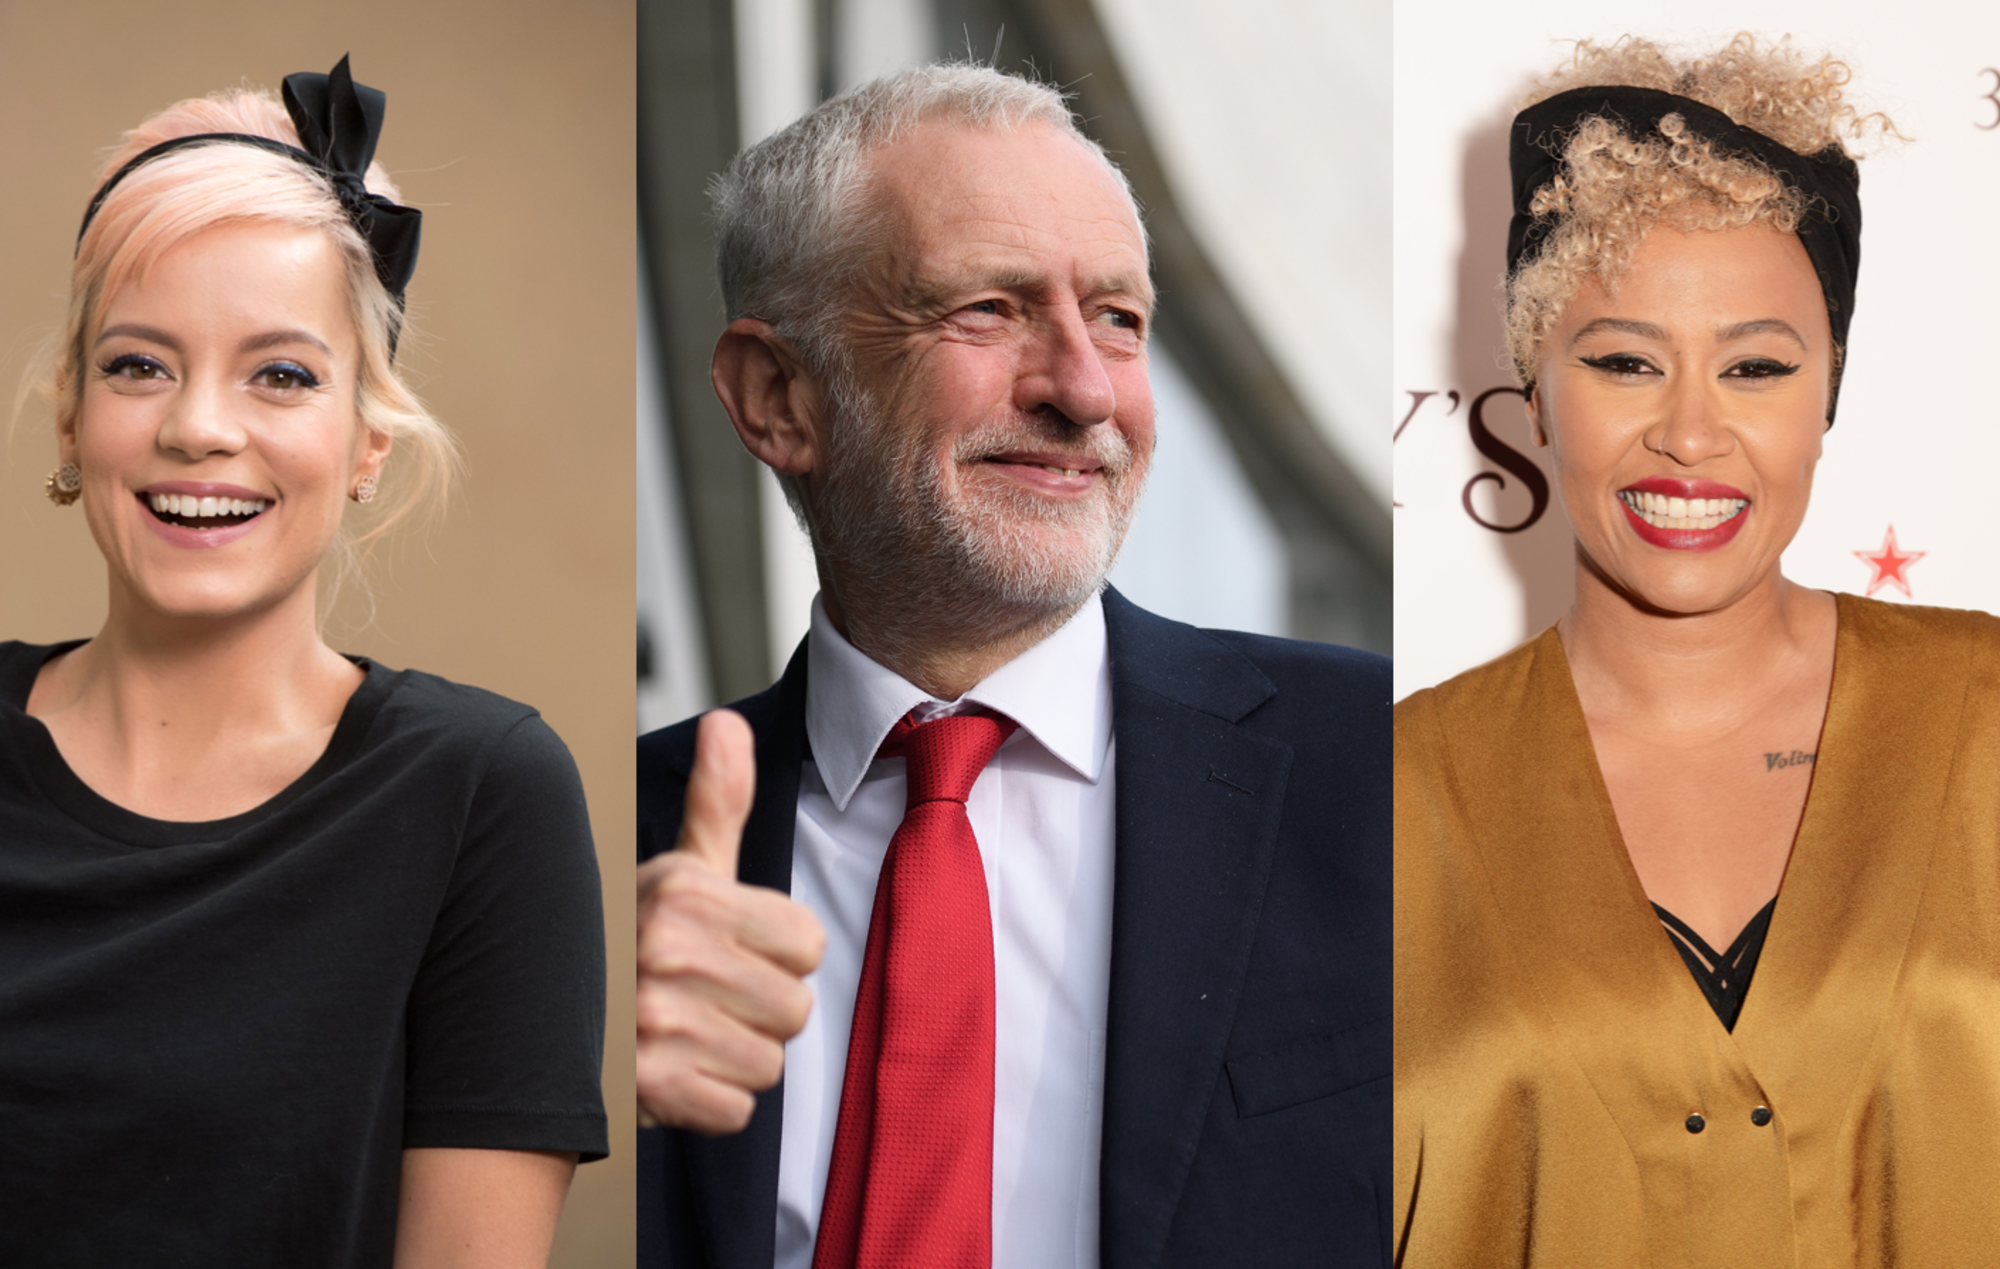 Jeremy Corbyn to launch charter for the arts with support from Lily Allen, Emeli Sandé and Ken Loach